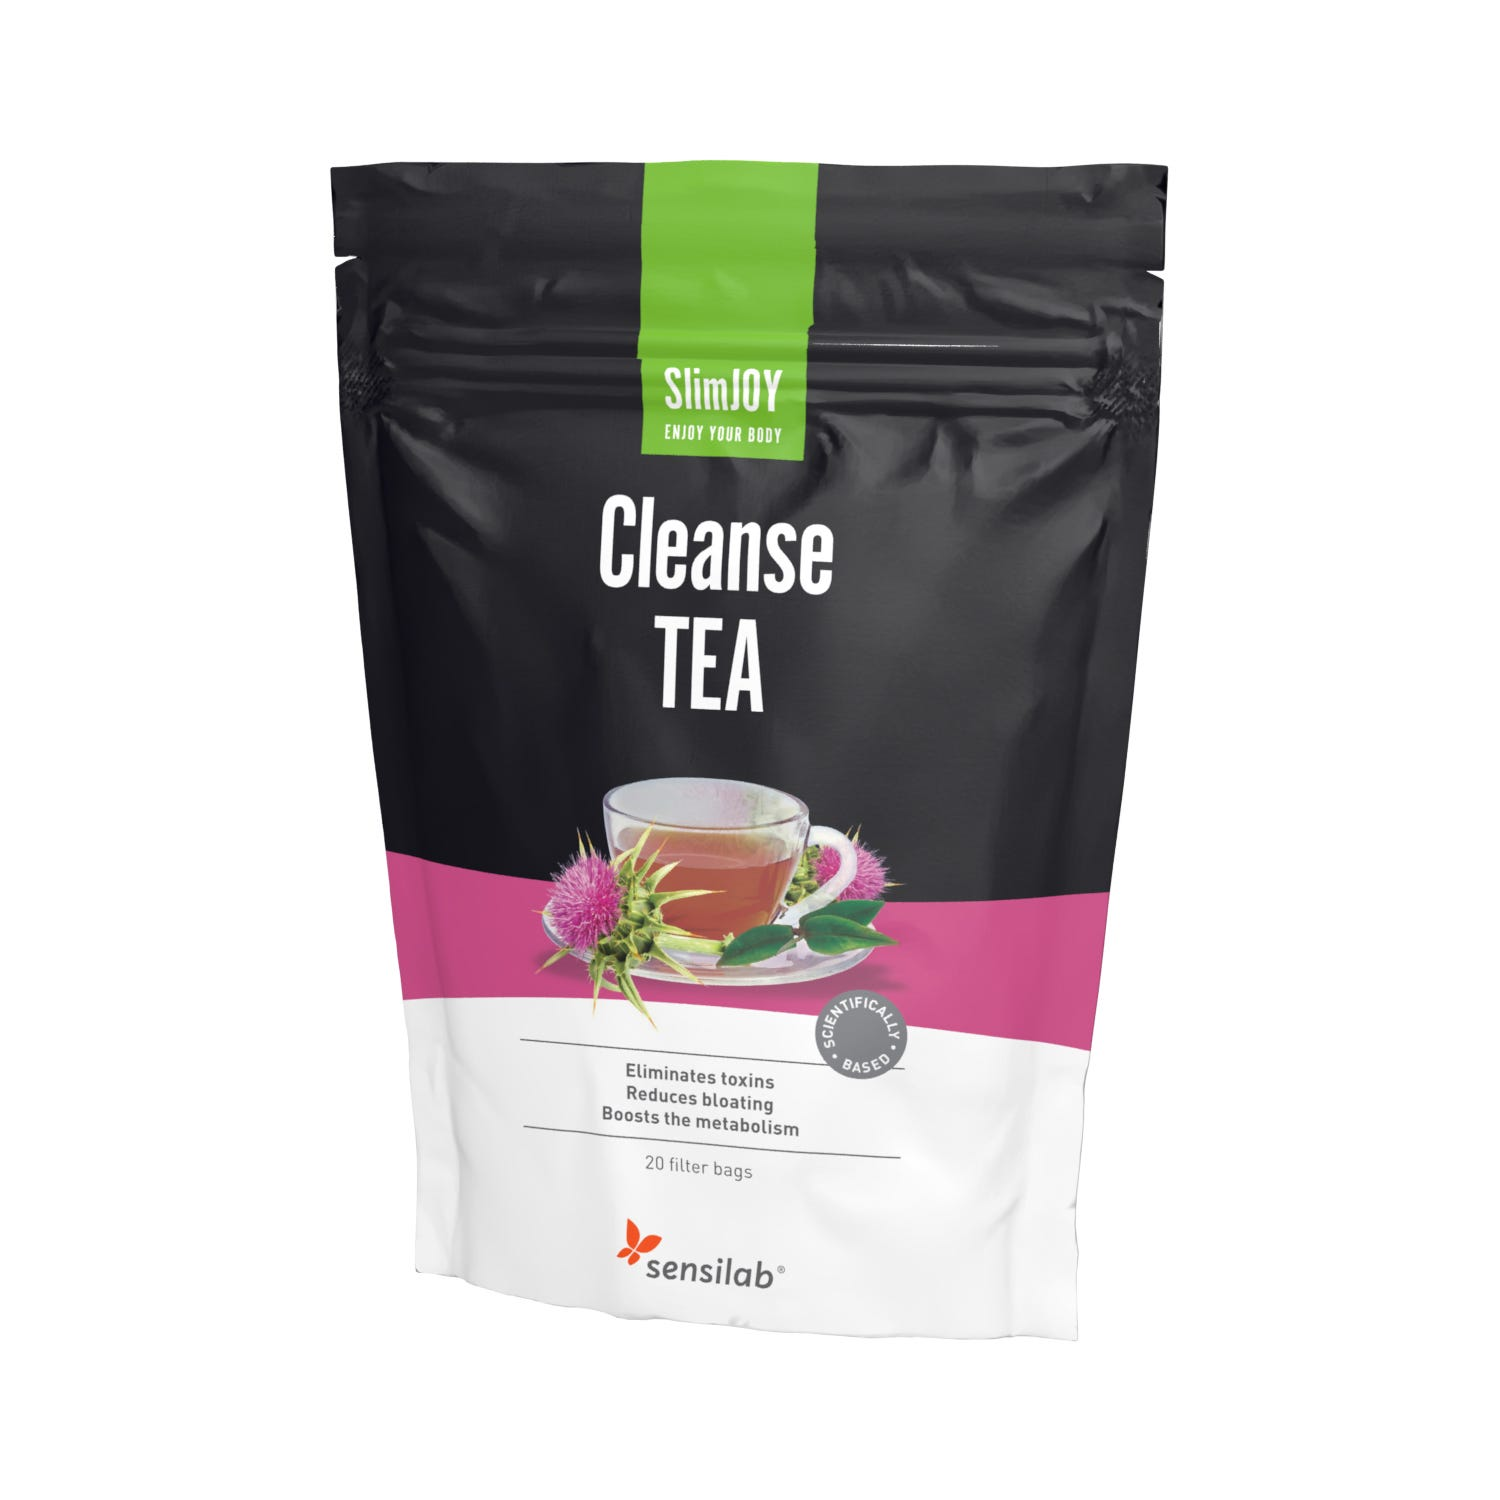 NOVO: Cleanse TEA